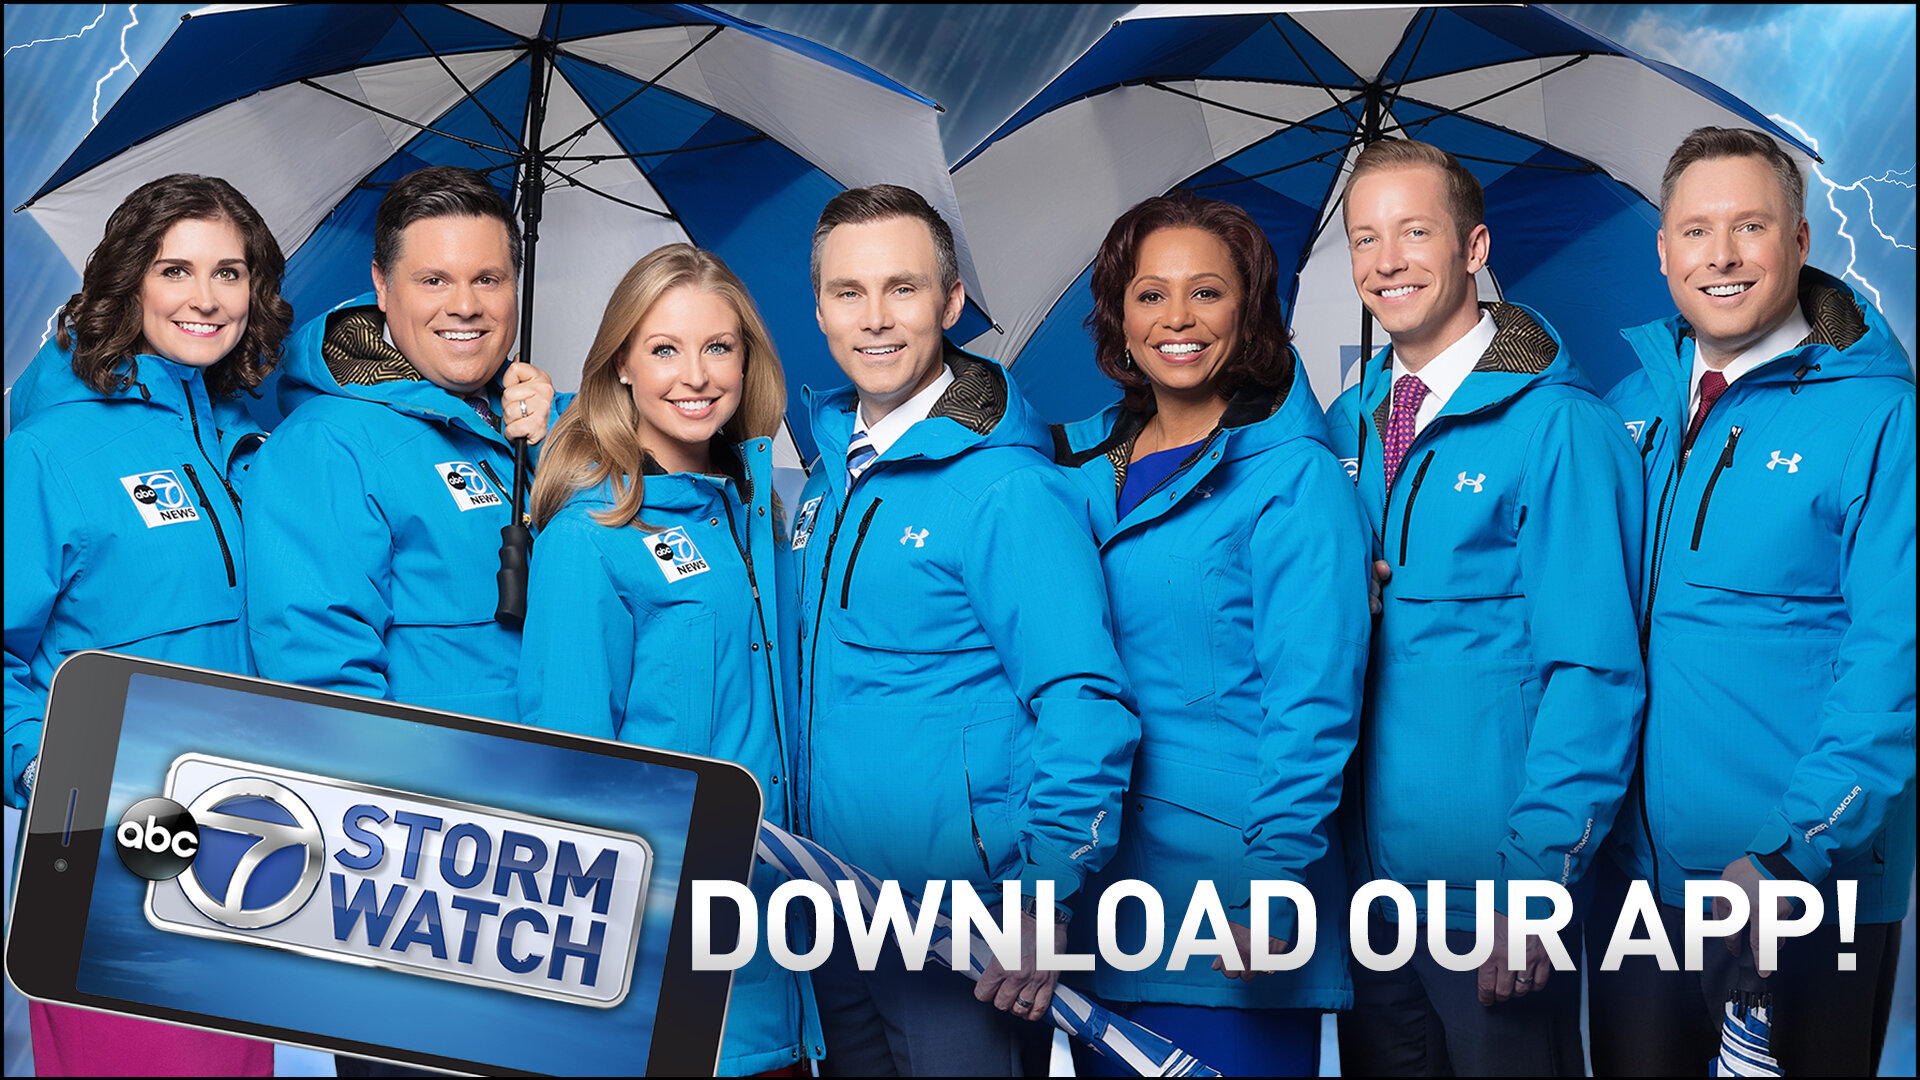 1920x1080_StormwatchTeam_app_2018.jpg